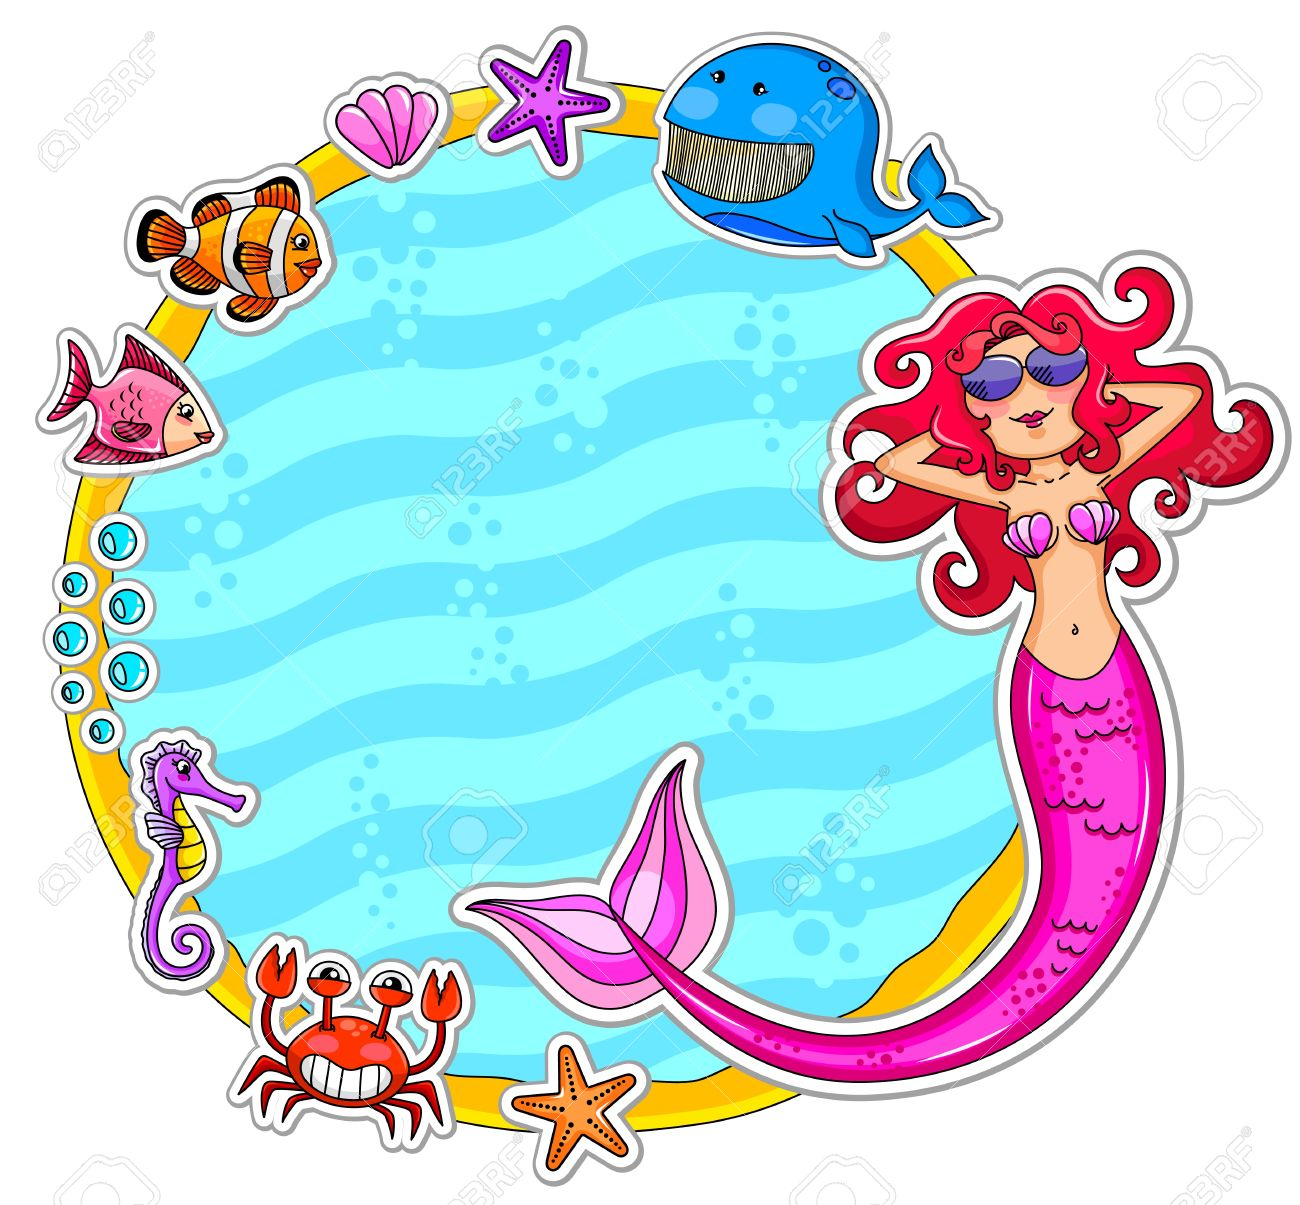 Frame with sea creatures and a mermaid wearing sunglasses Stock Vector - 16525632